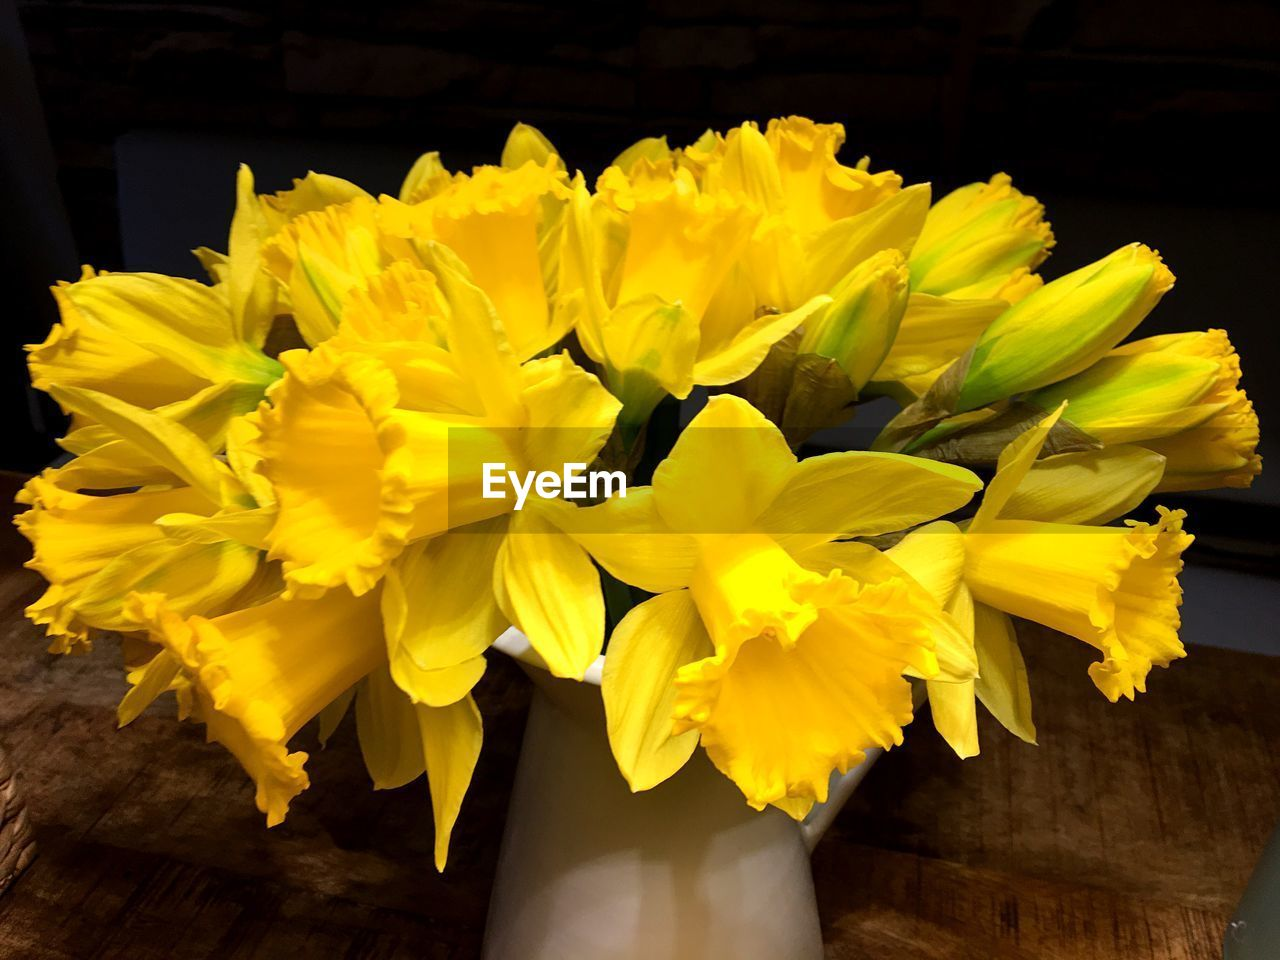 yellow, flowering plant, flower, vulnerability, beauty in nature, petal, fragility, freshness, plant, inflorescence, flower head, close-up, nature, daffodil, growth, no people, day, flower arrangement, indoors, pollen, bouquet